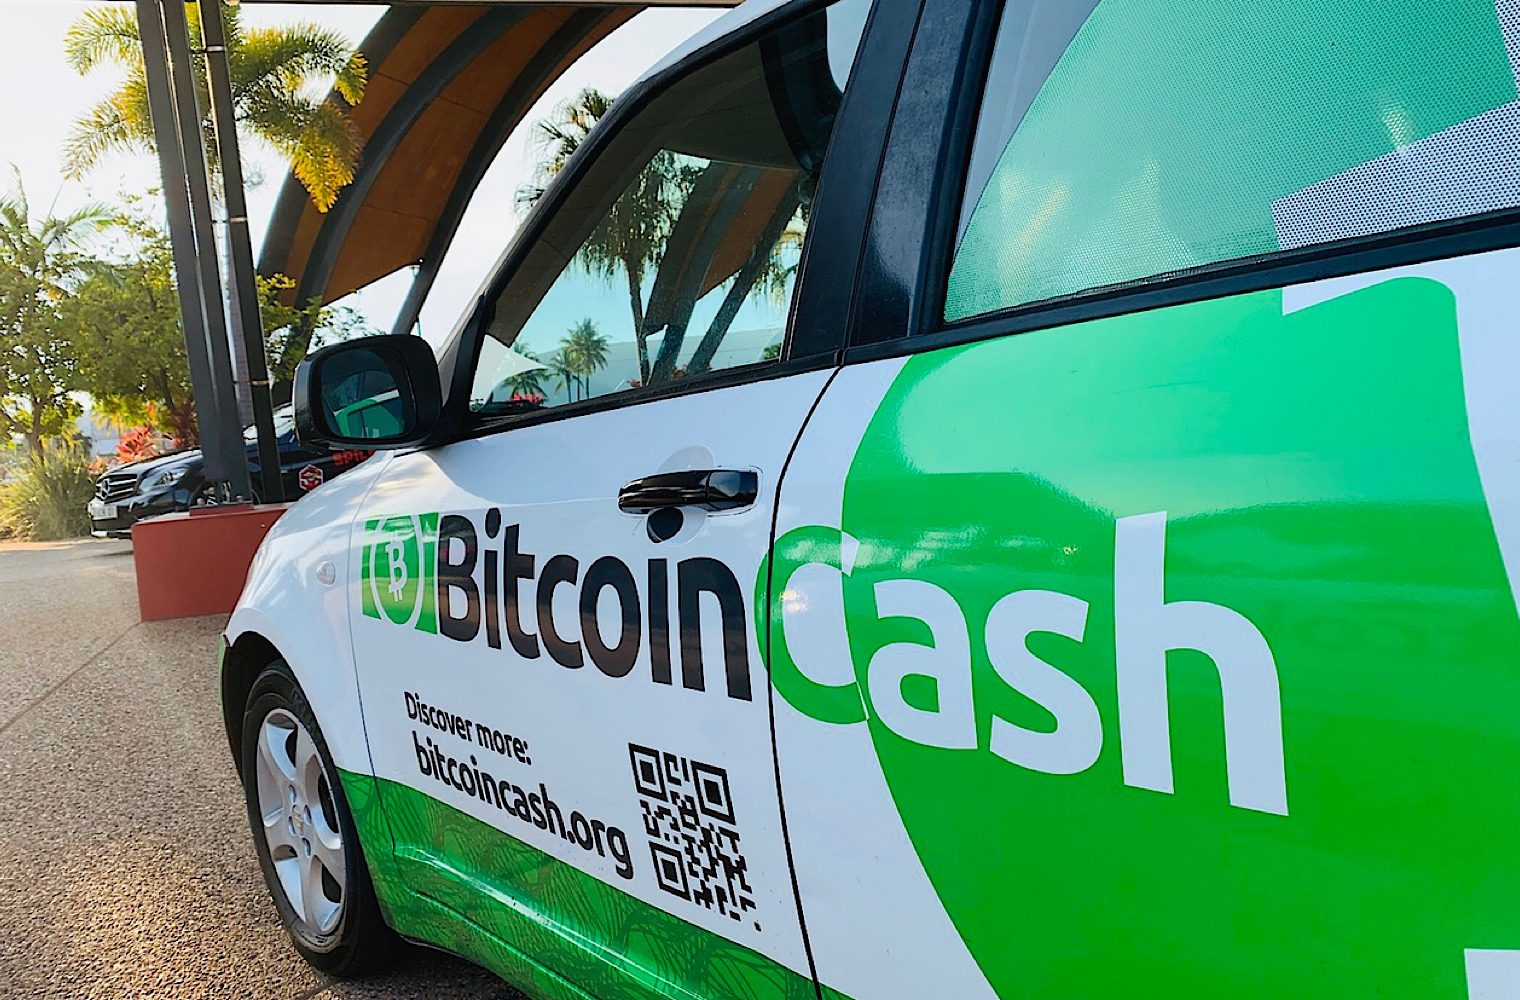 Emergent Coding, Adoption Incentives and Practical Use - Bitcoin Cash City, Day 2